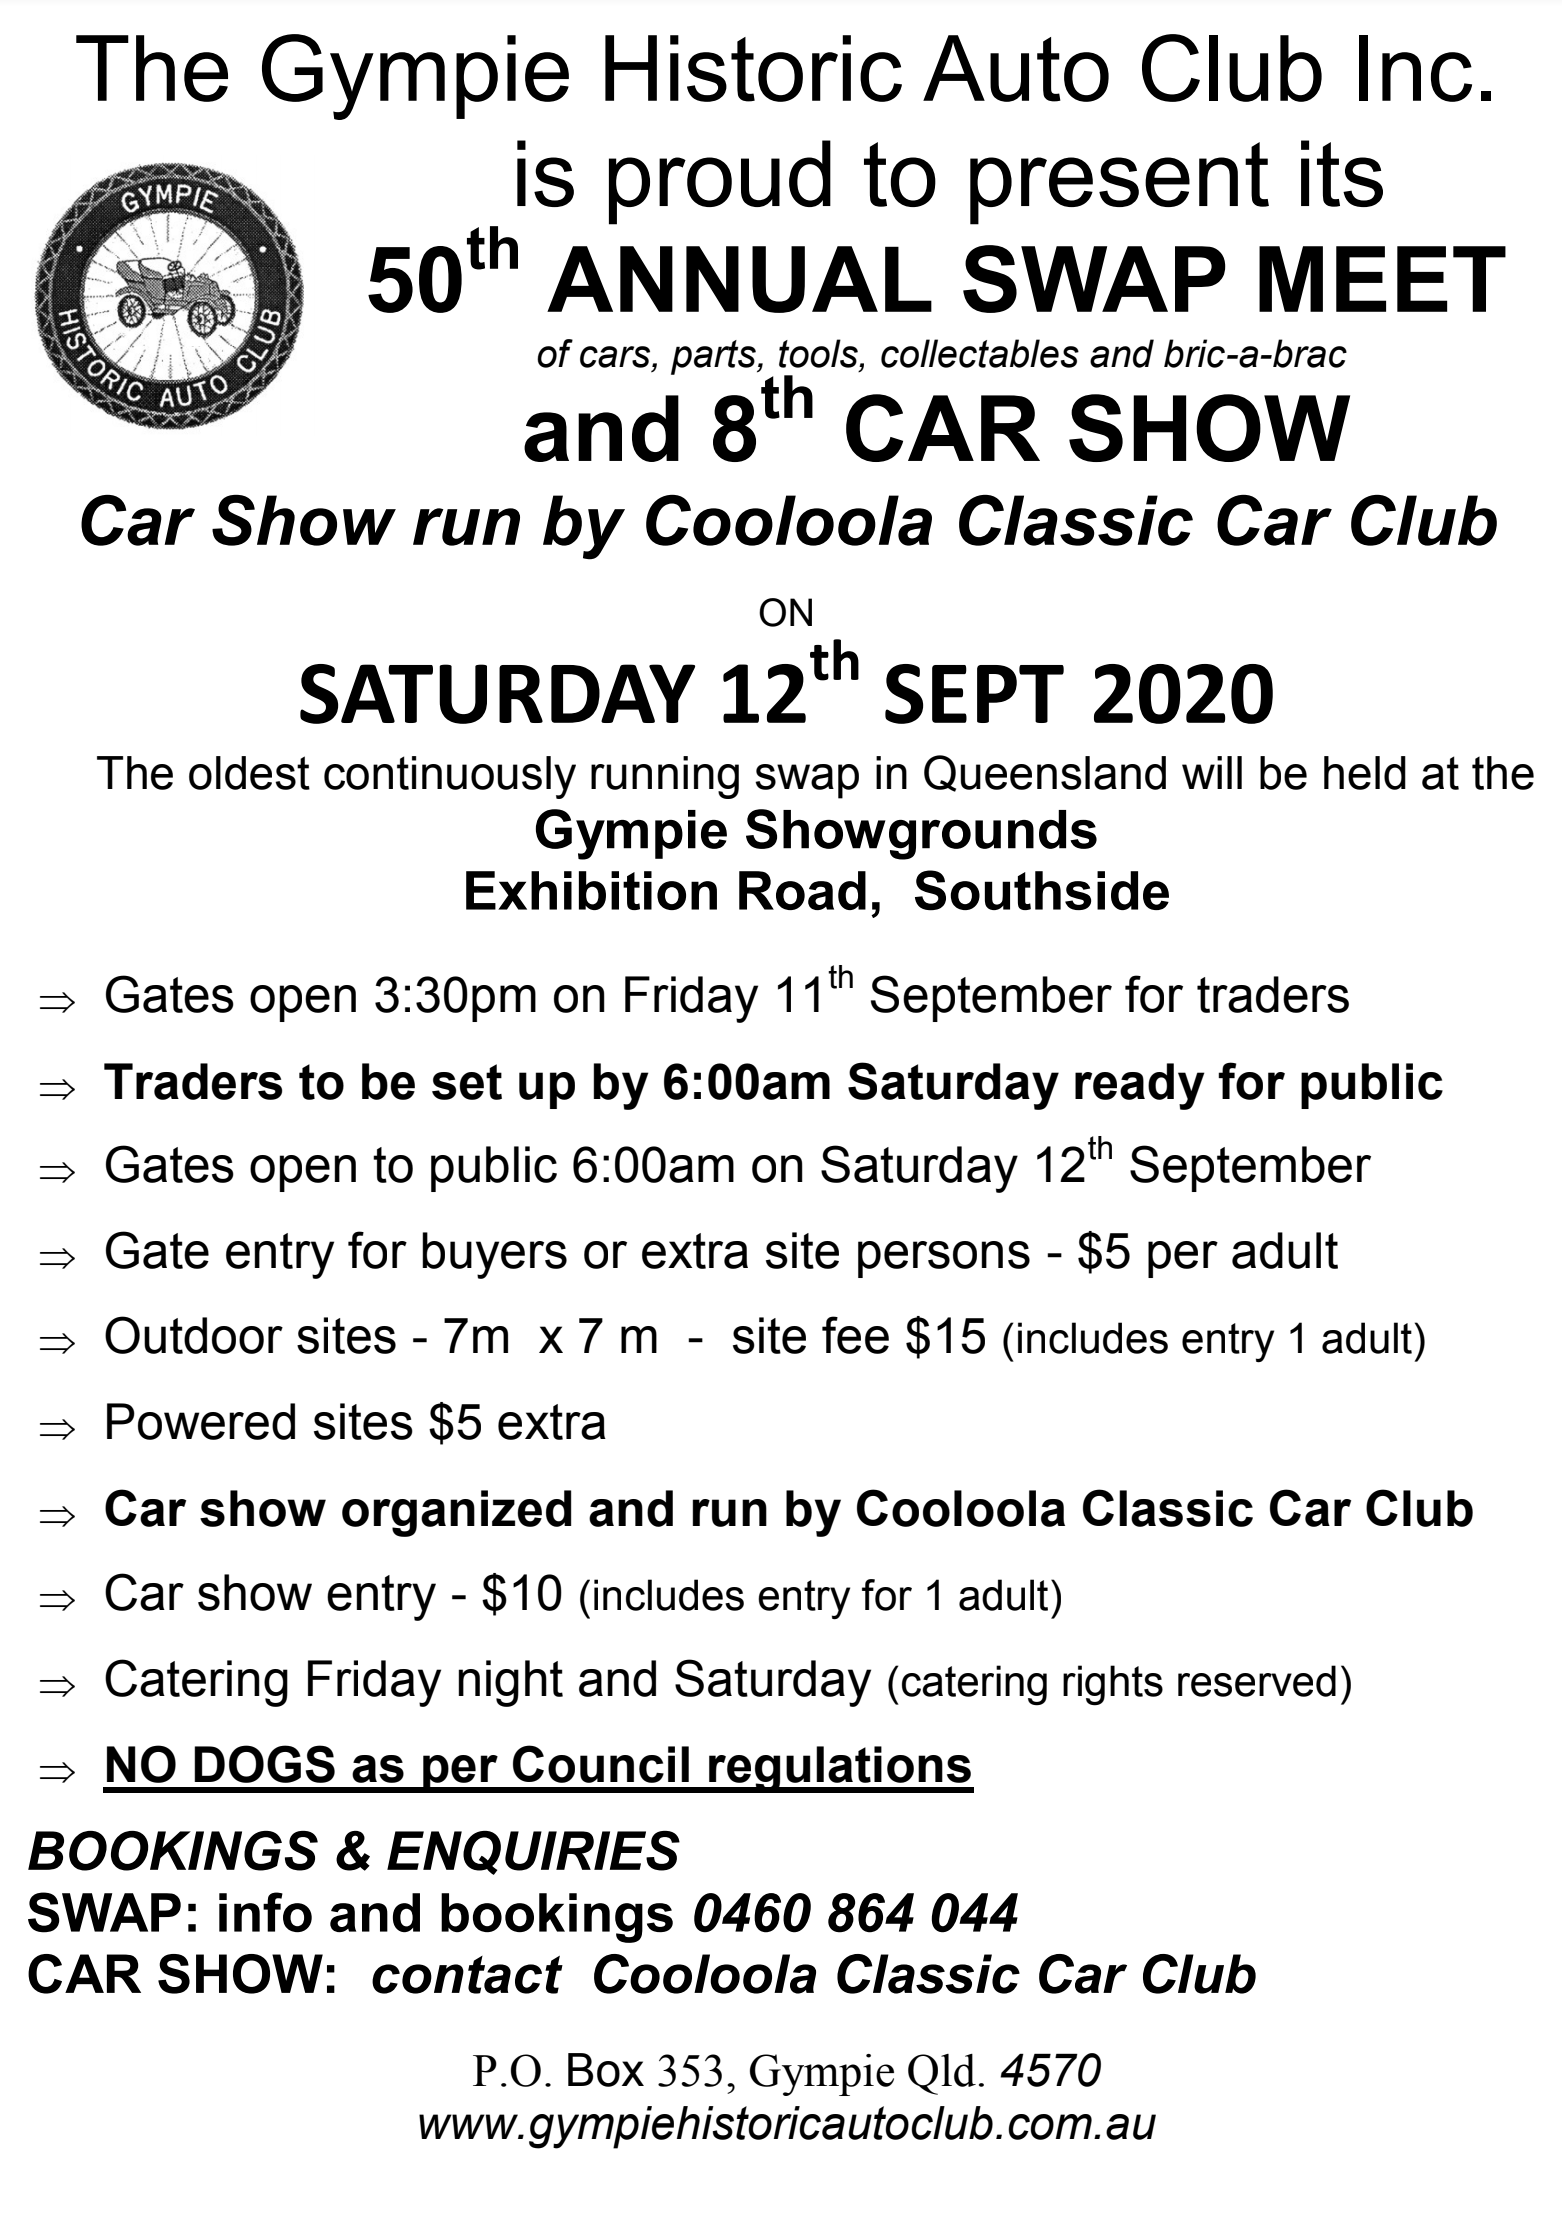 CANCELLED - Gympie Historic Autoclub Swapmeet 2020 @ Gympie Showgrounds | Southside | Queensland | Australia